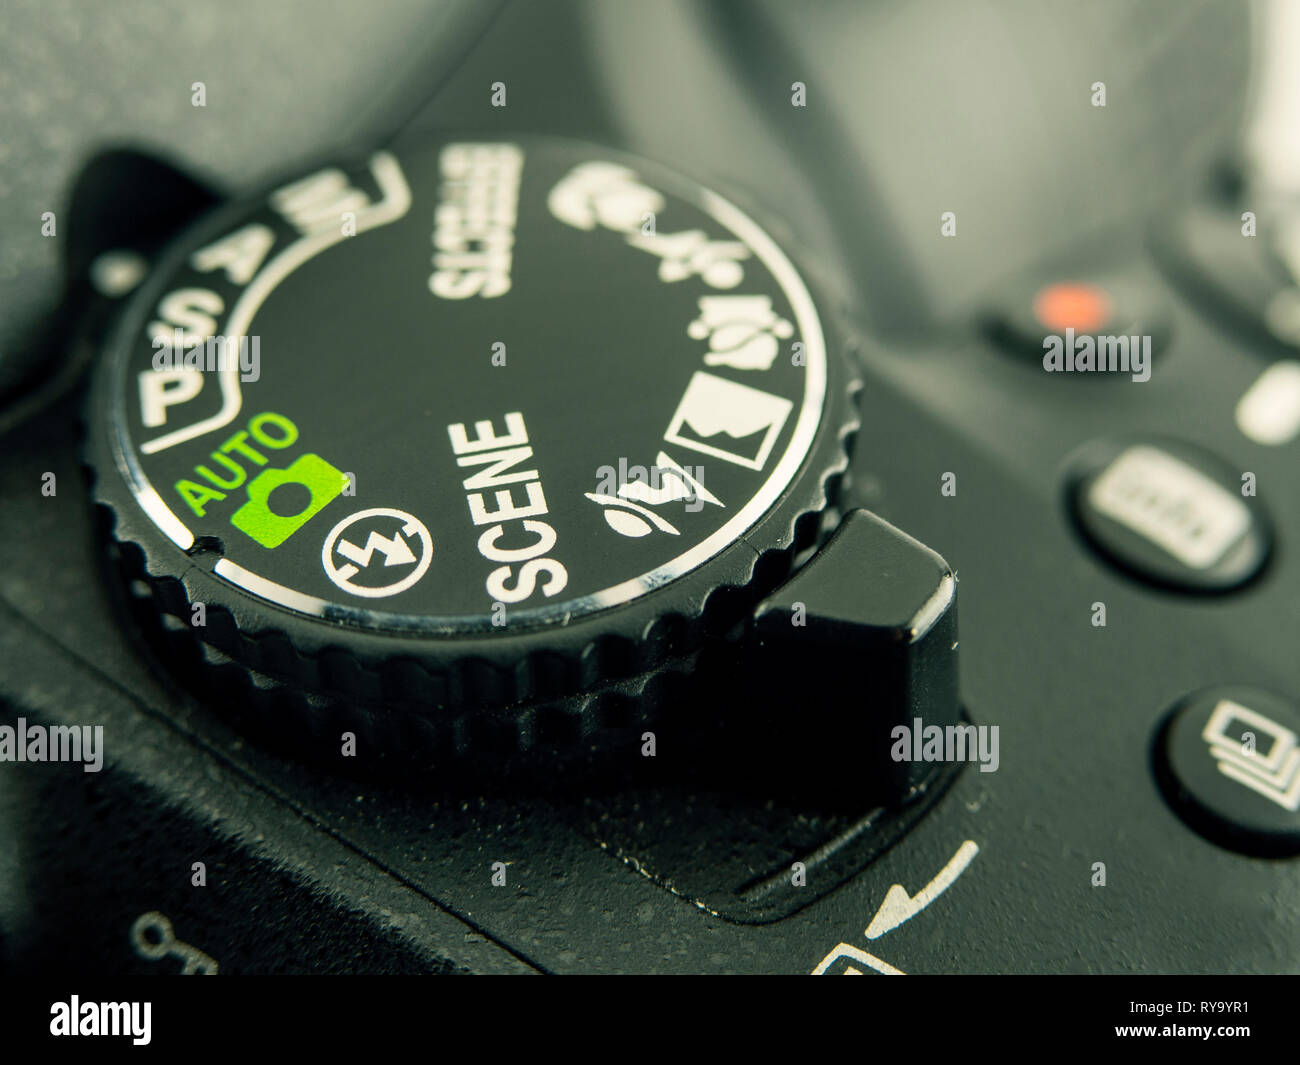 Close-up image of DSLR camera button dial - Stock Image